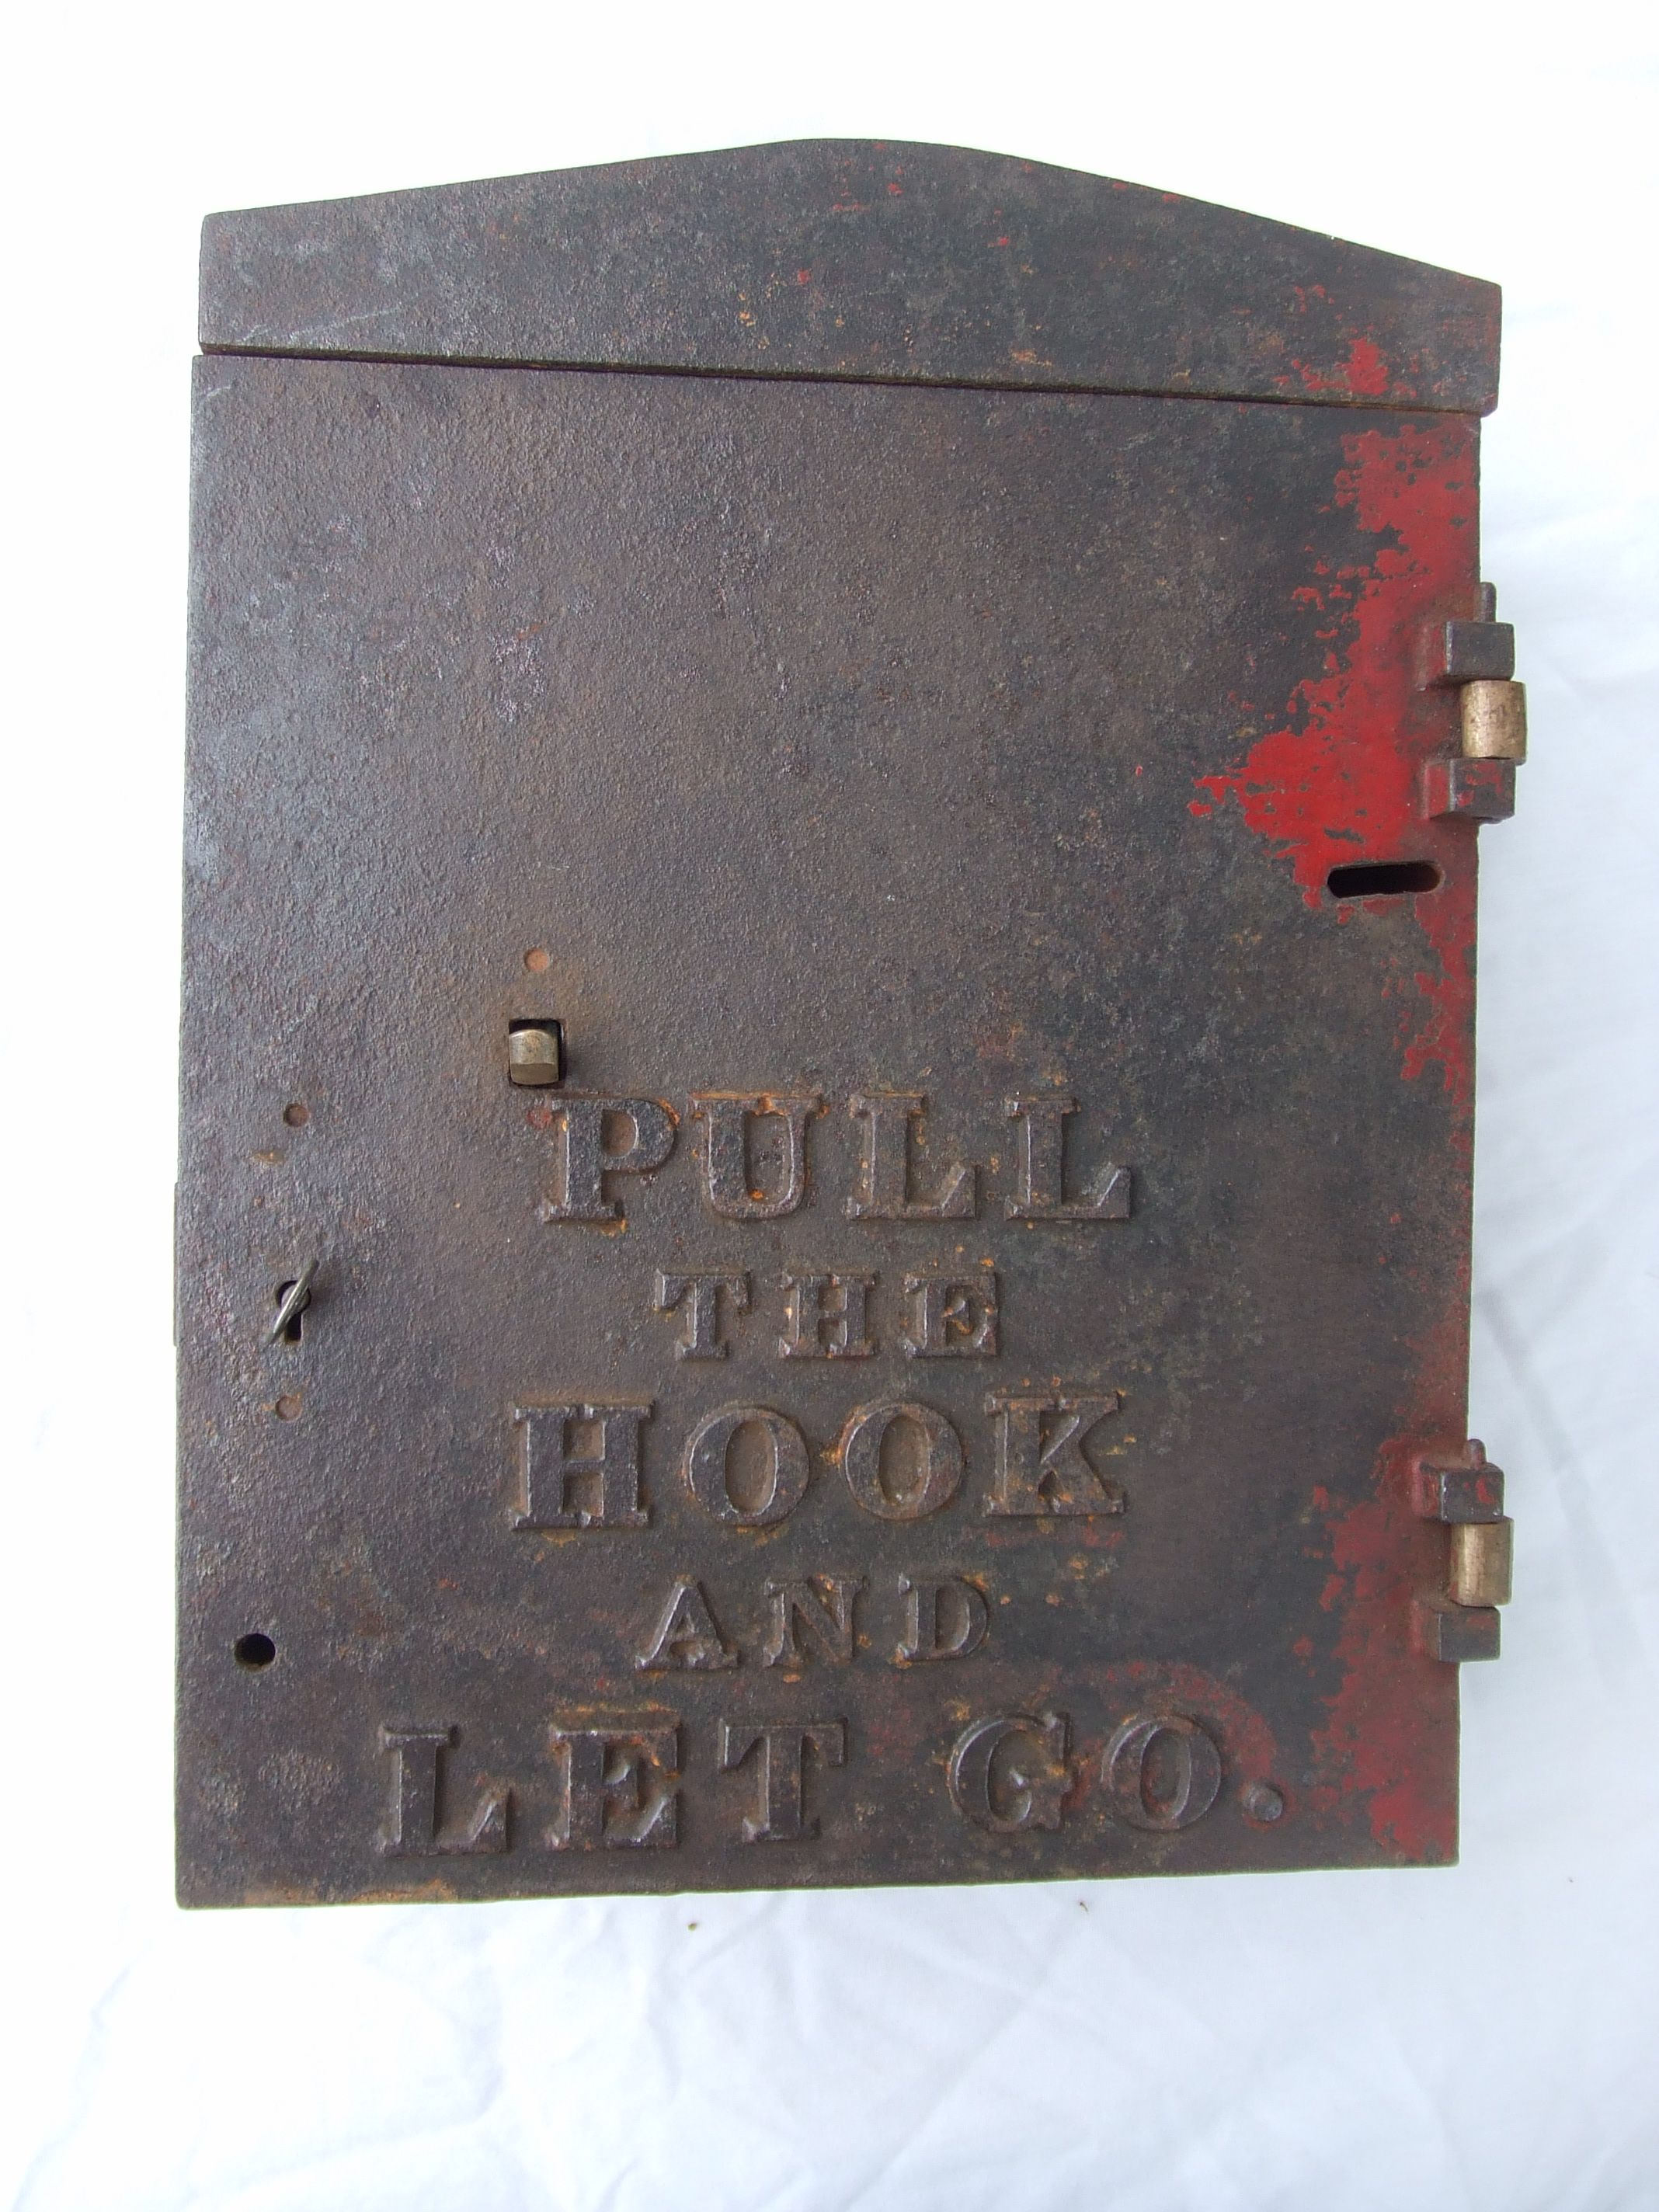 30ff5973b3cc4903cce9a68673cdb47b gamewell fire alarm telegraph box complete with smith keyguard gamewell fire alarm box wiring diagram at reclaimingppi.co